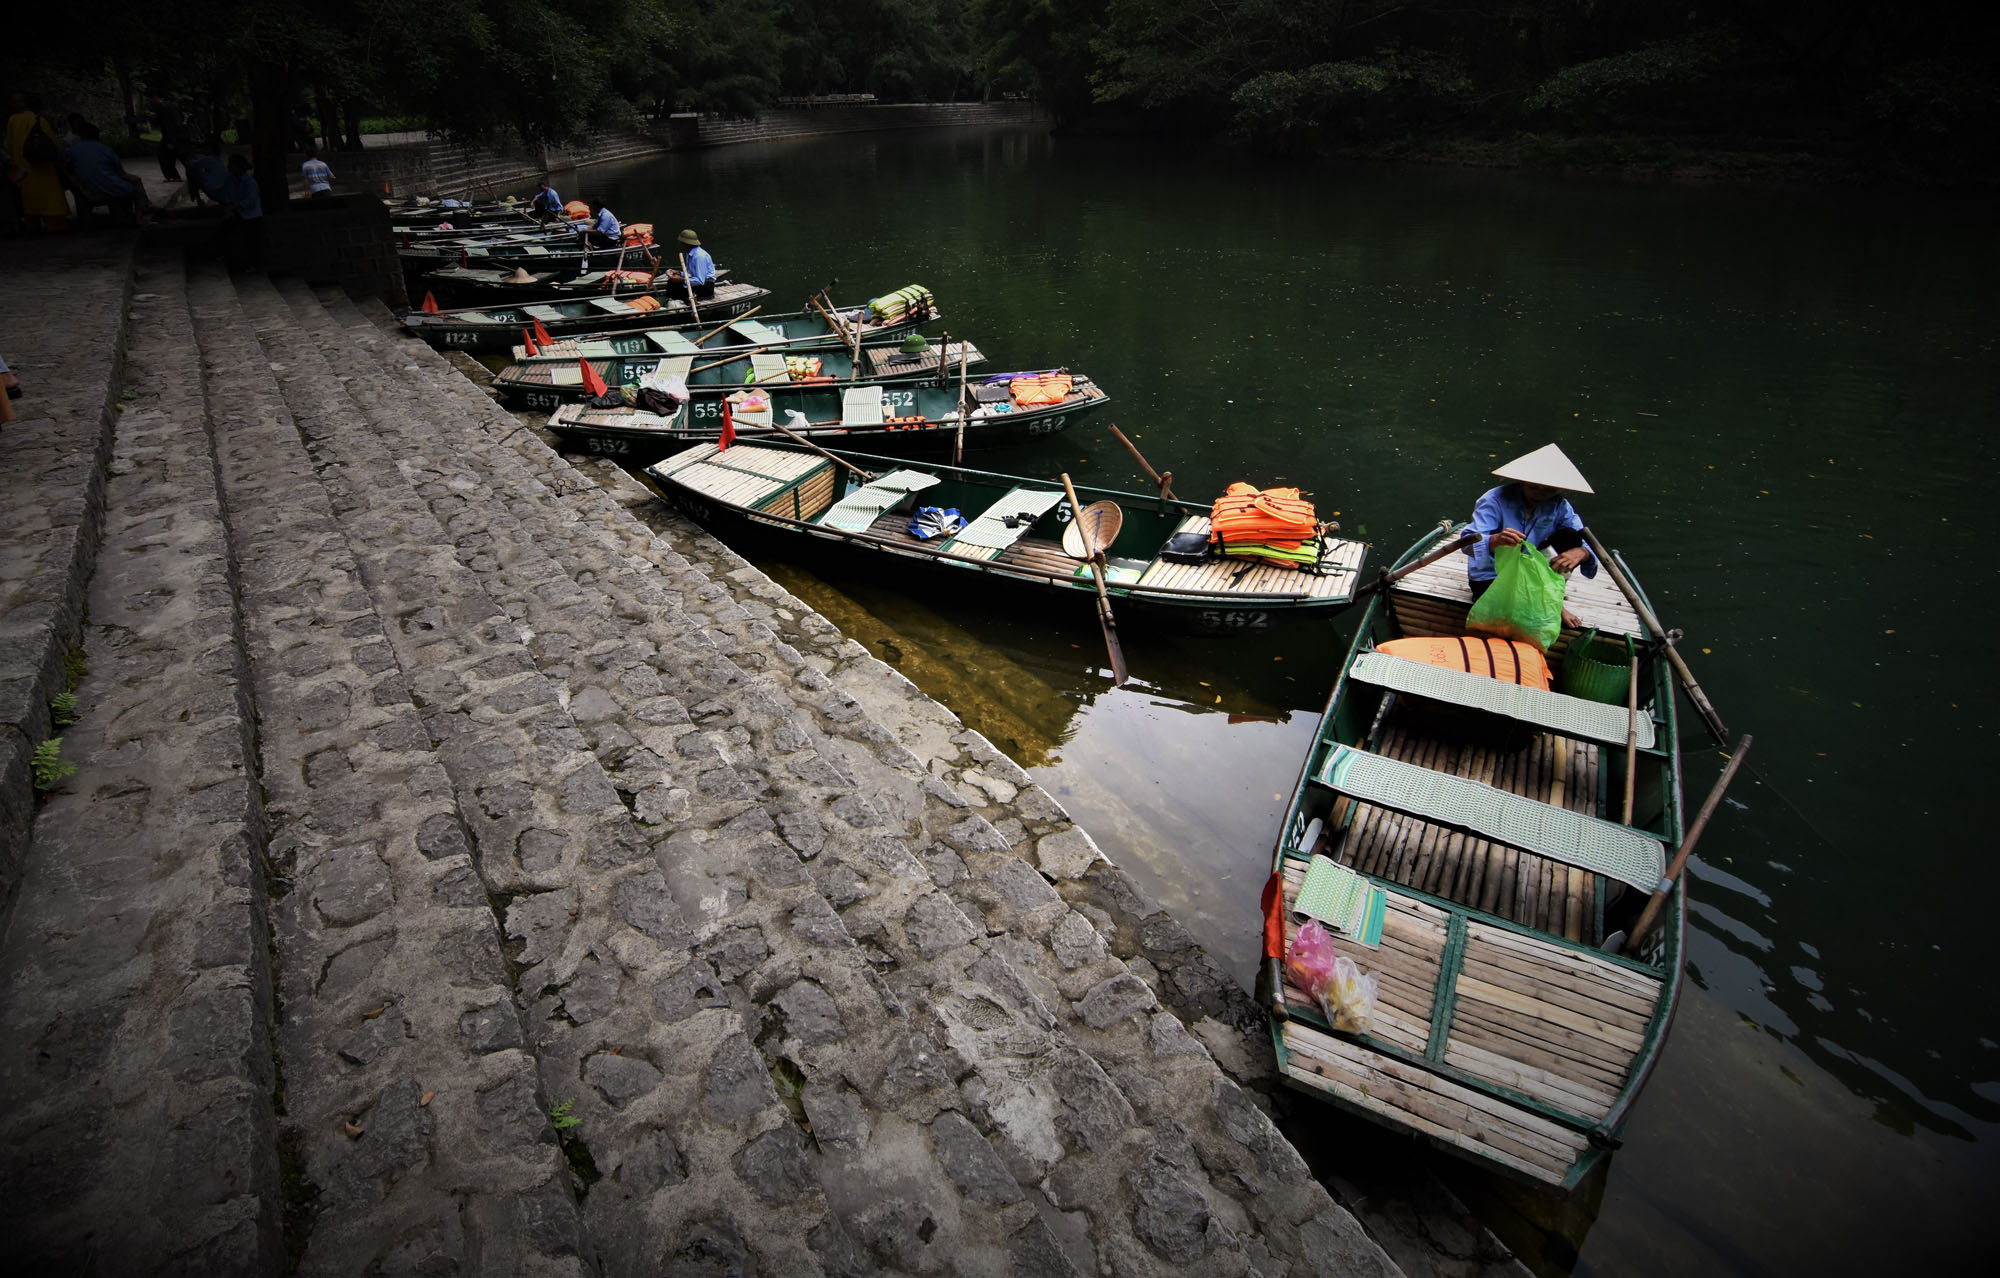 boating-vietnam-travel-discover-waterway-water-1437005-pxhere.com-min – Copy